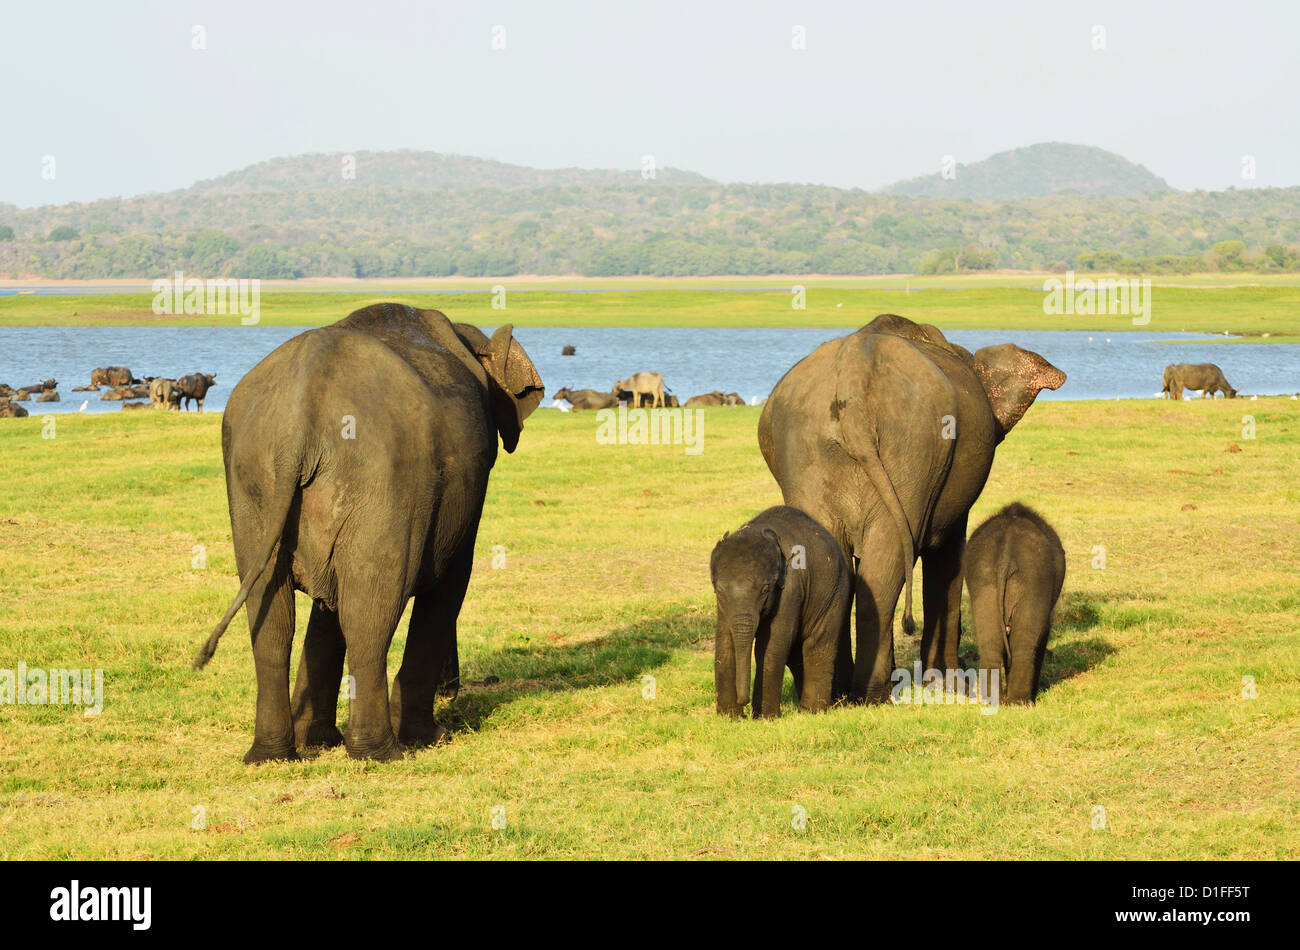 L'éléphant du Sri Lanka (Elephas maximus maximus), le Parc National de Minneriya, Sri Lanka, Asie Photo Stock